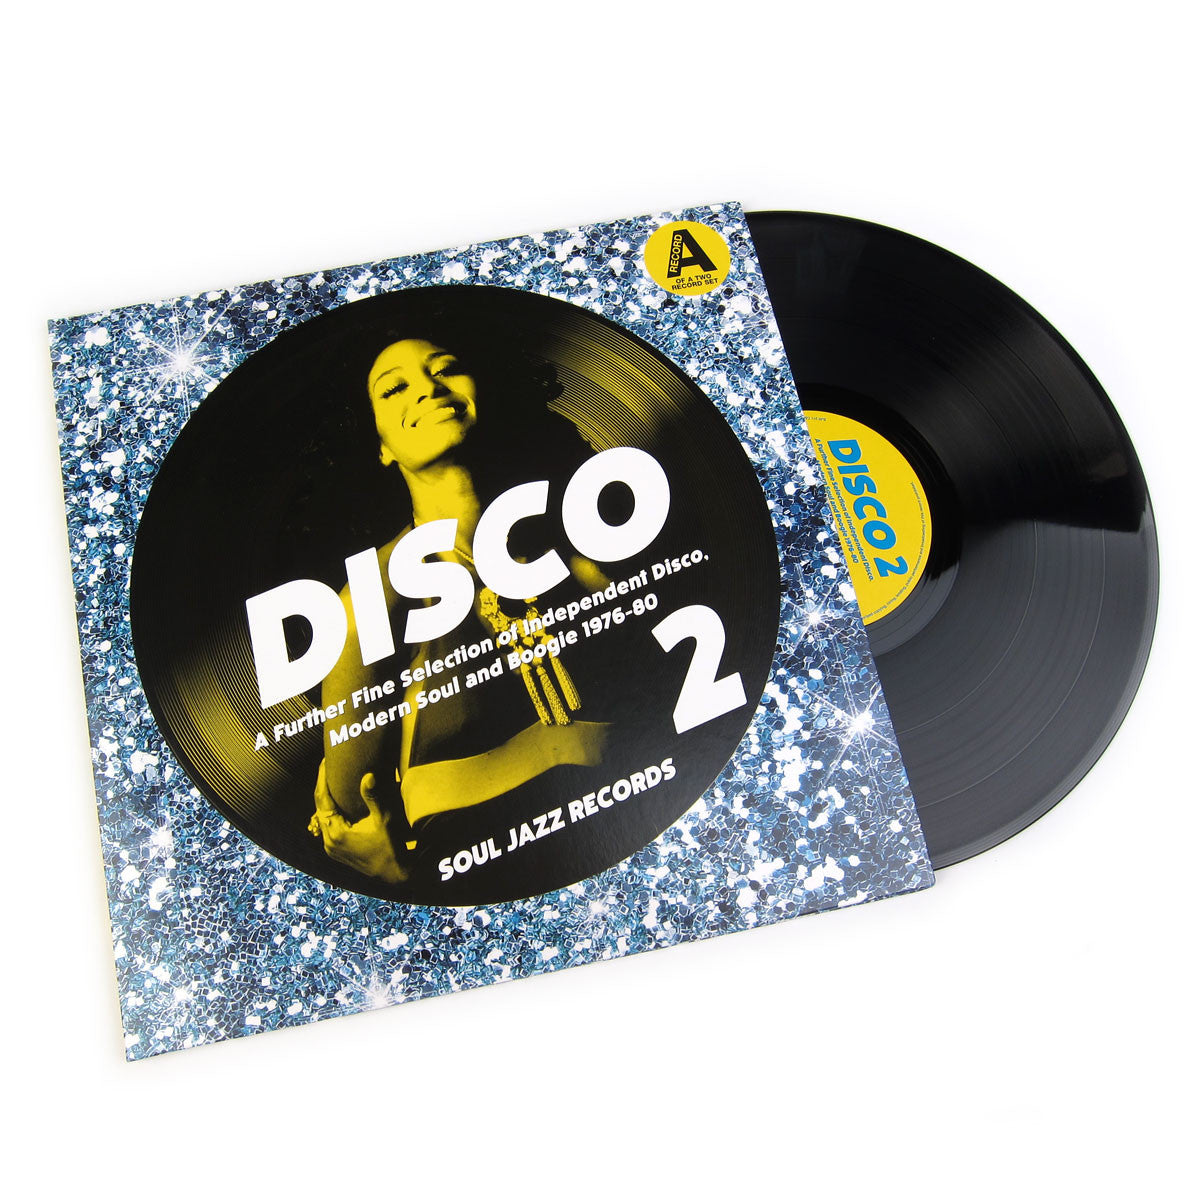 Soul Jazz Records: Disco 2 1976-80 (Record A) Vinyl 2LP